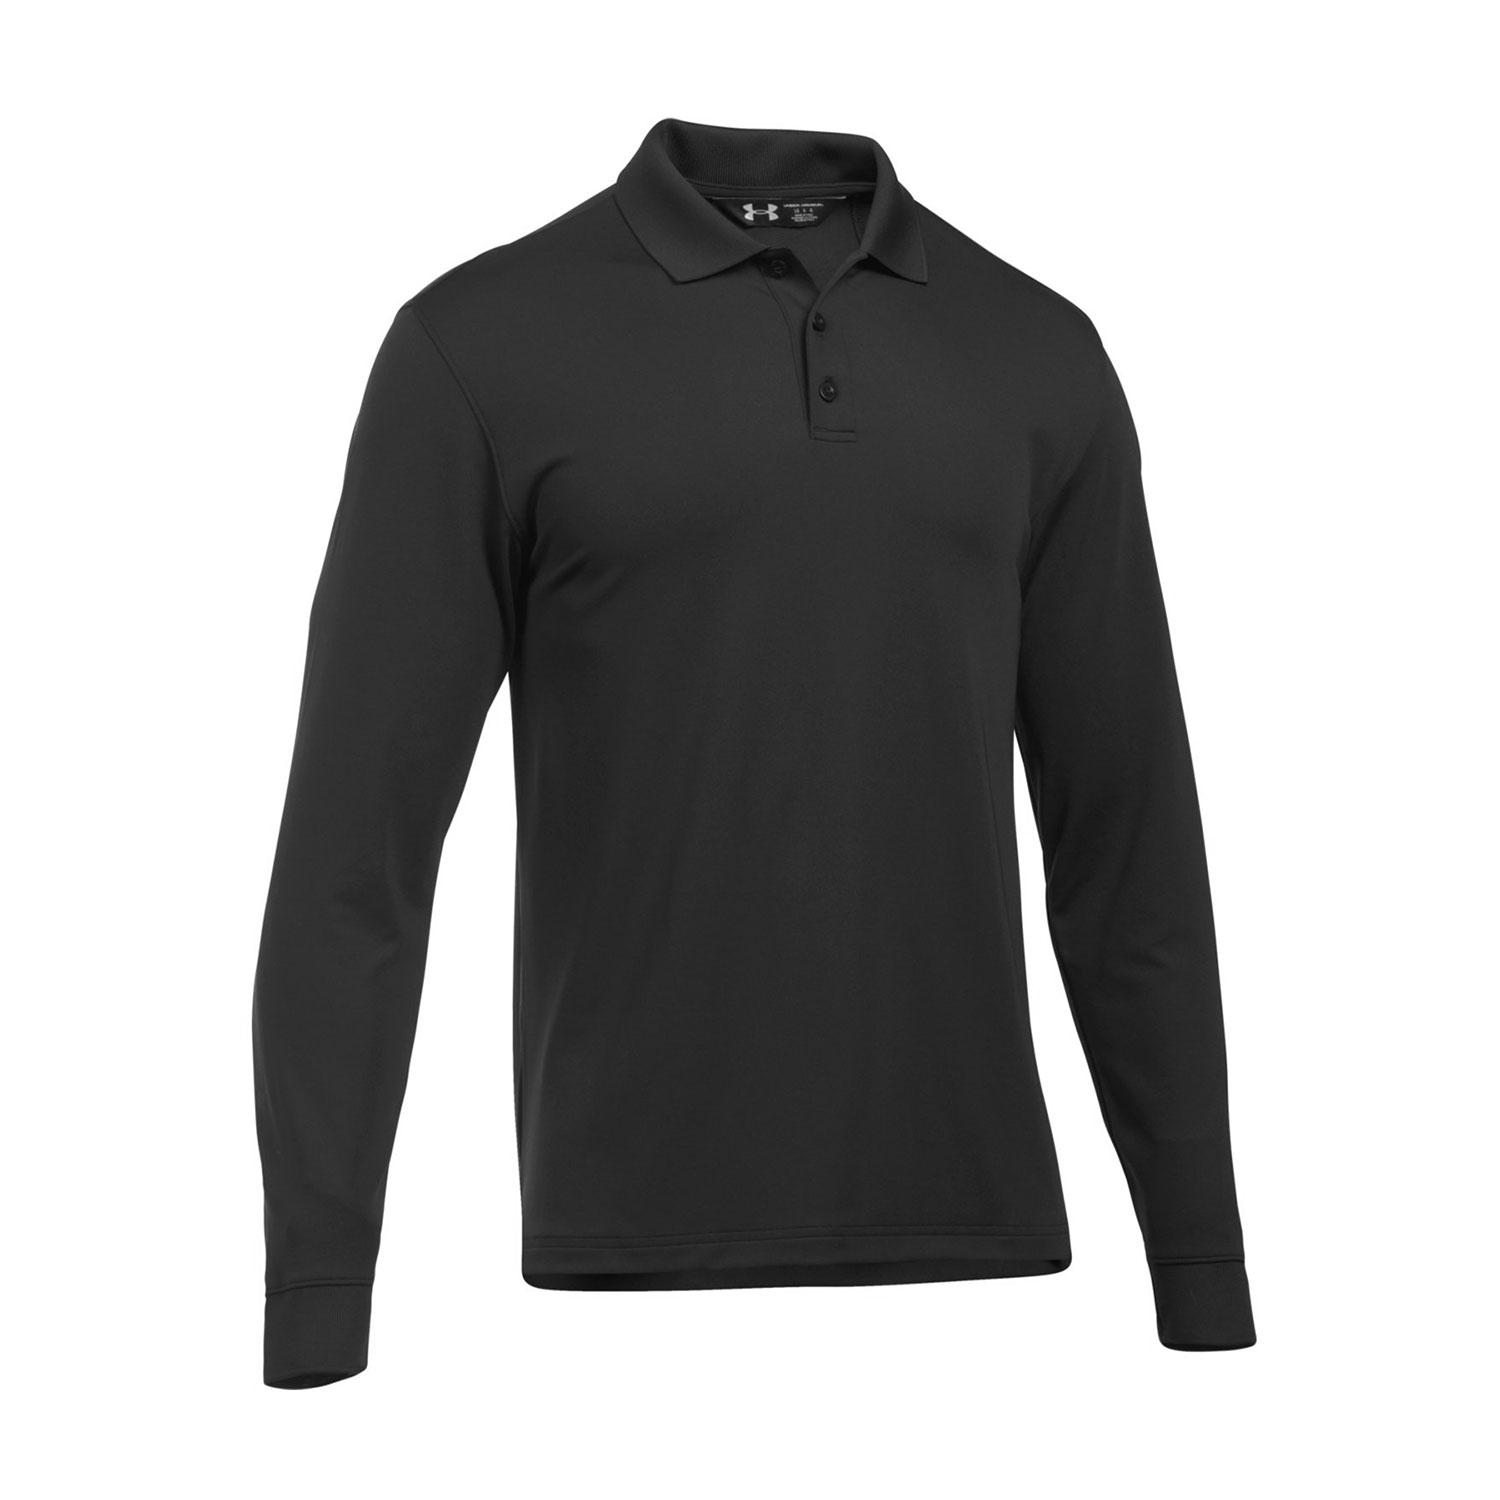 Under Armour Long Sleeve Tactical Performance Polo